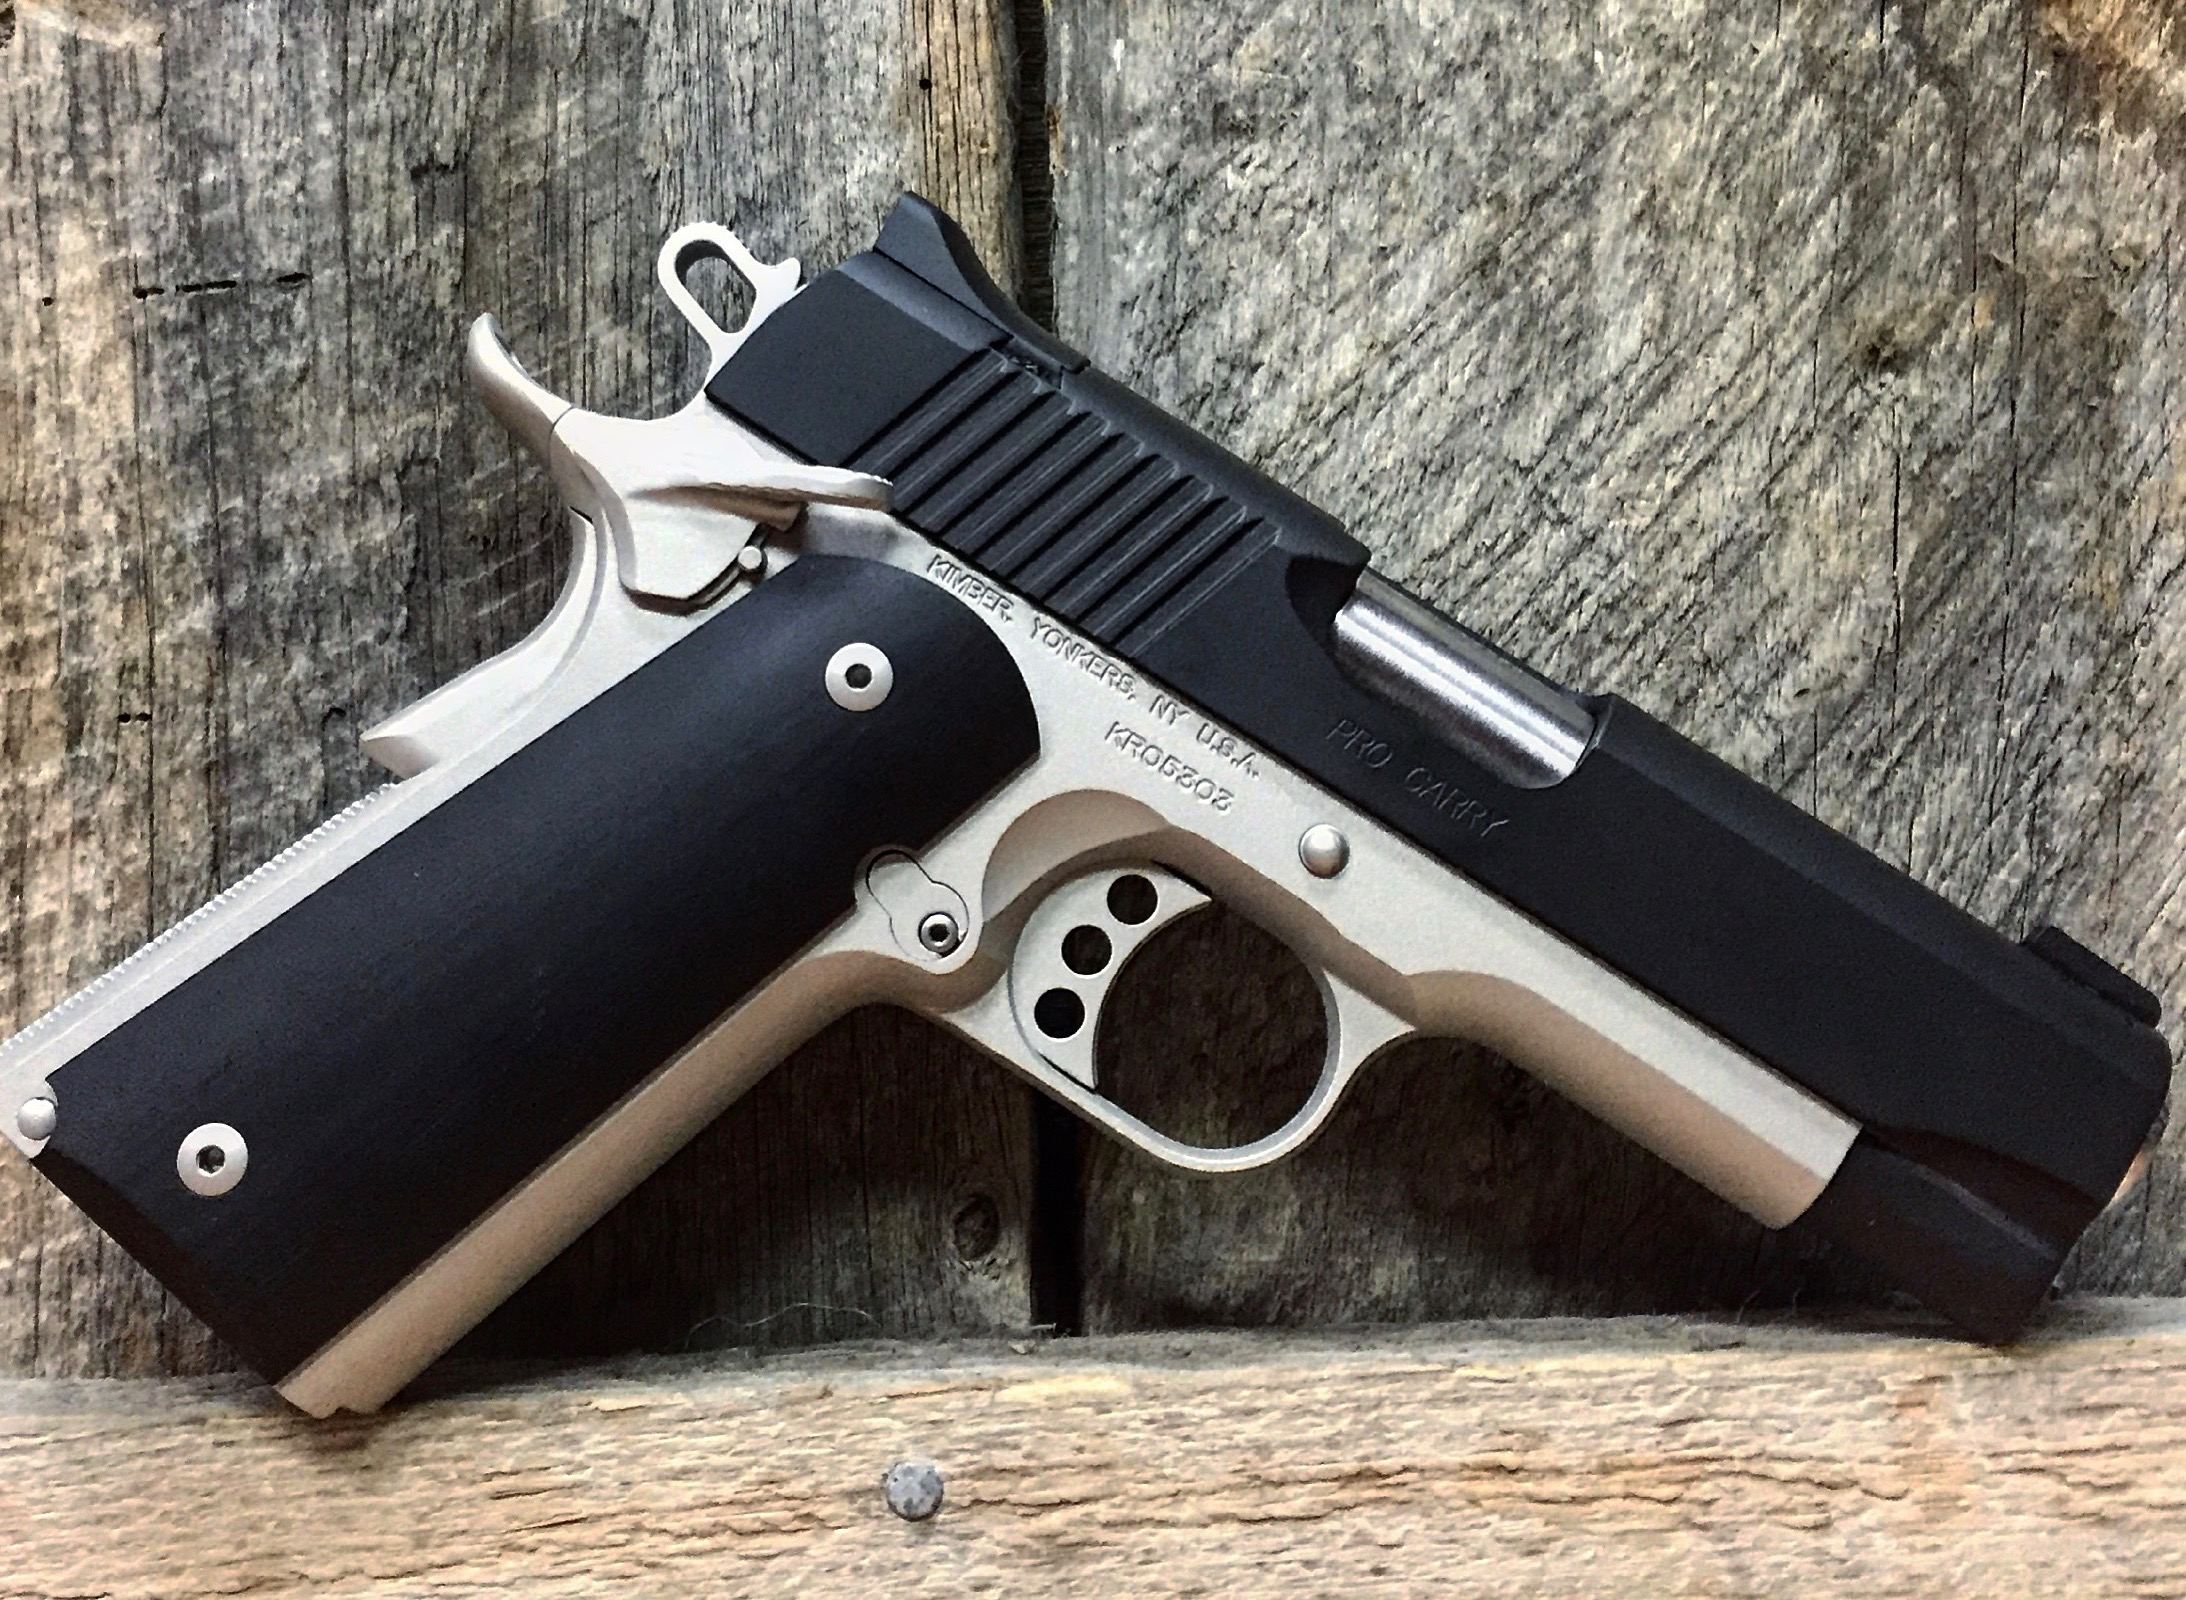 Cerakote Sand Lower Handgun